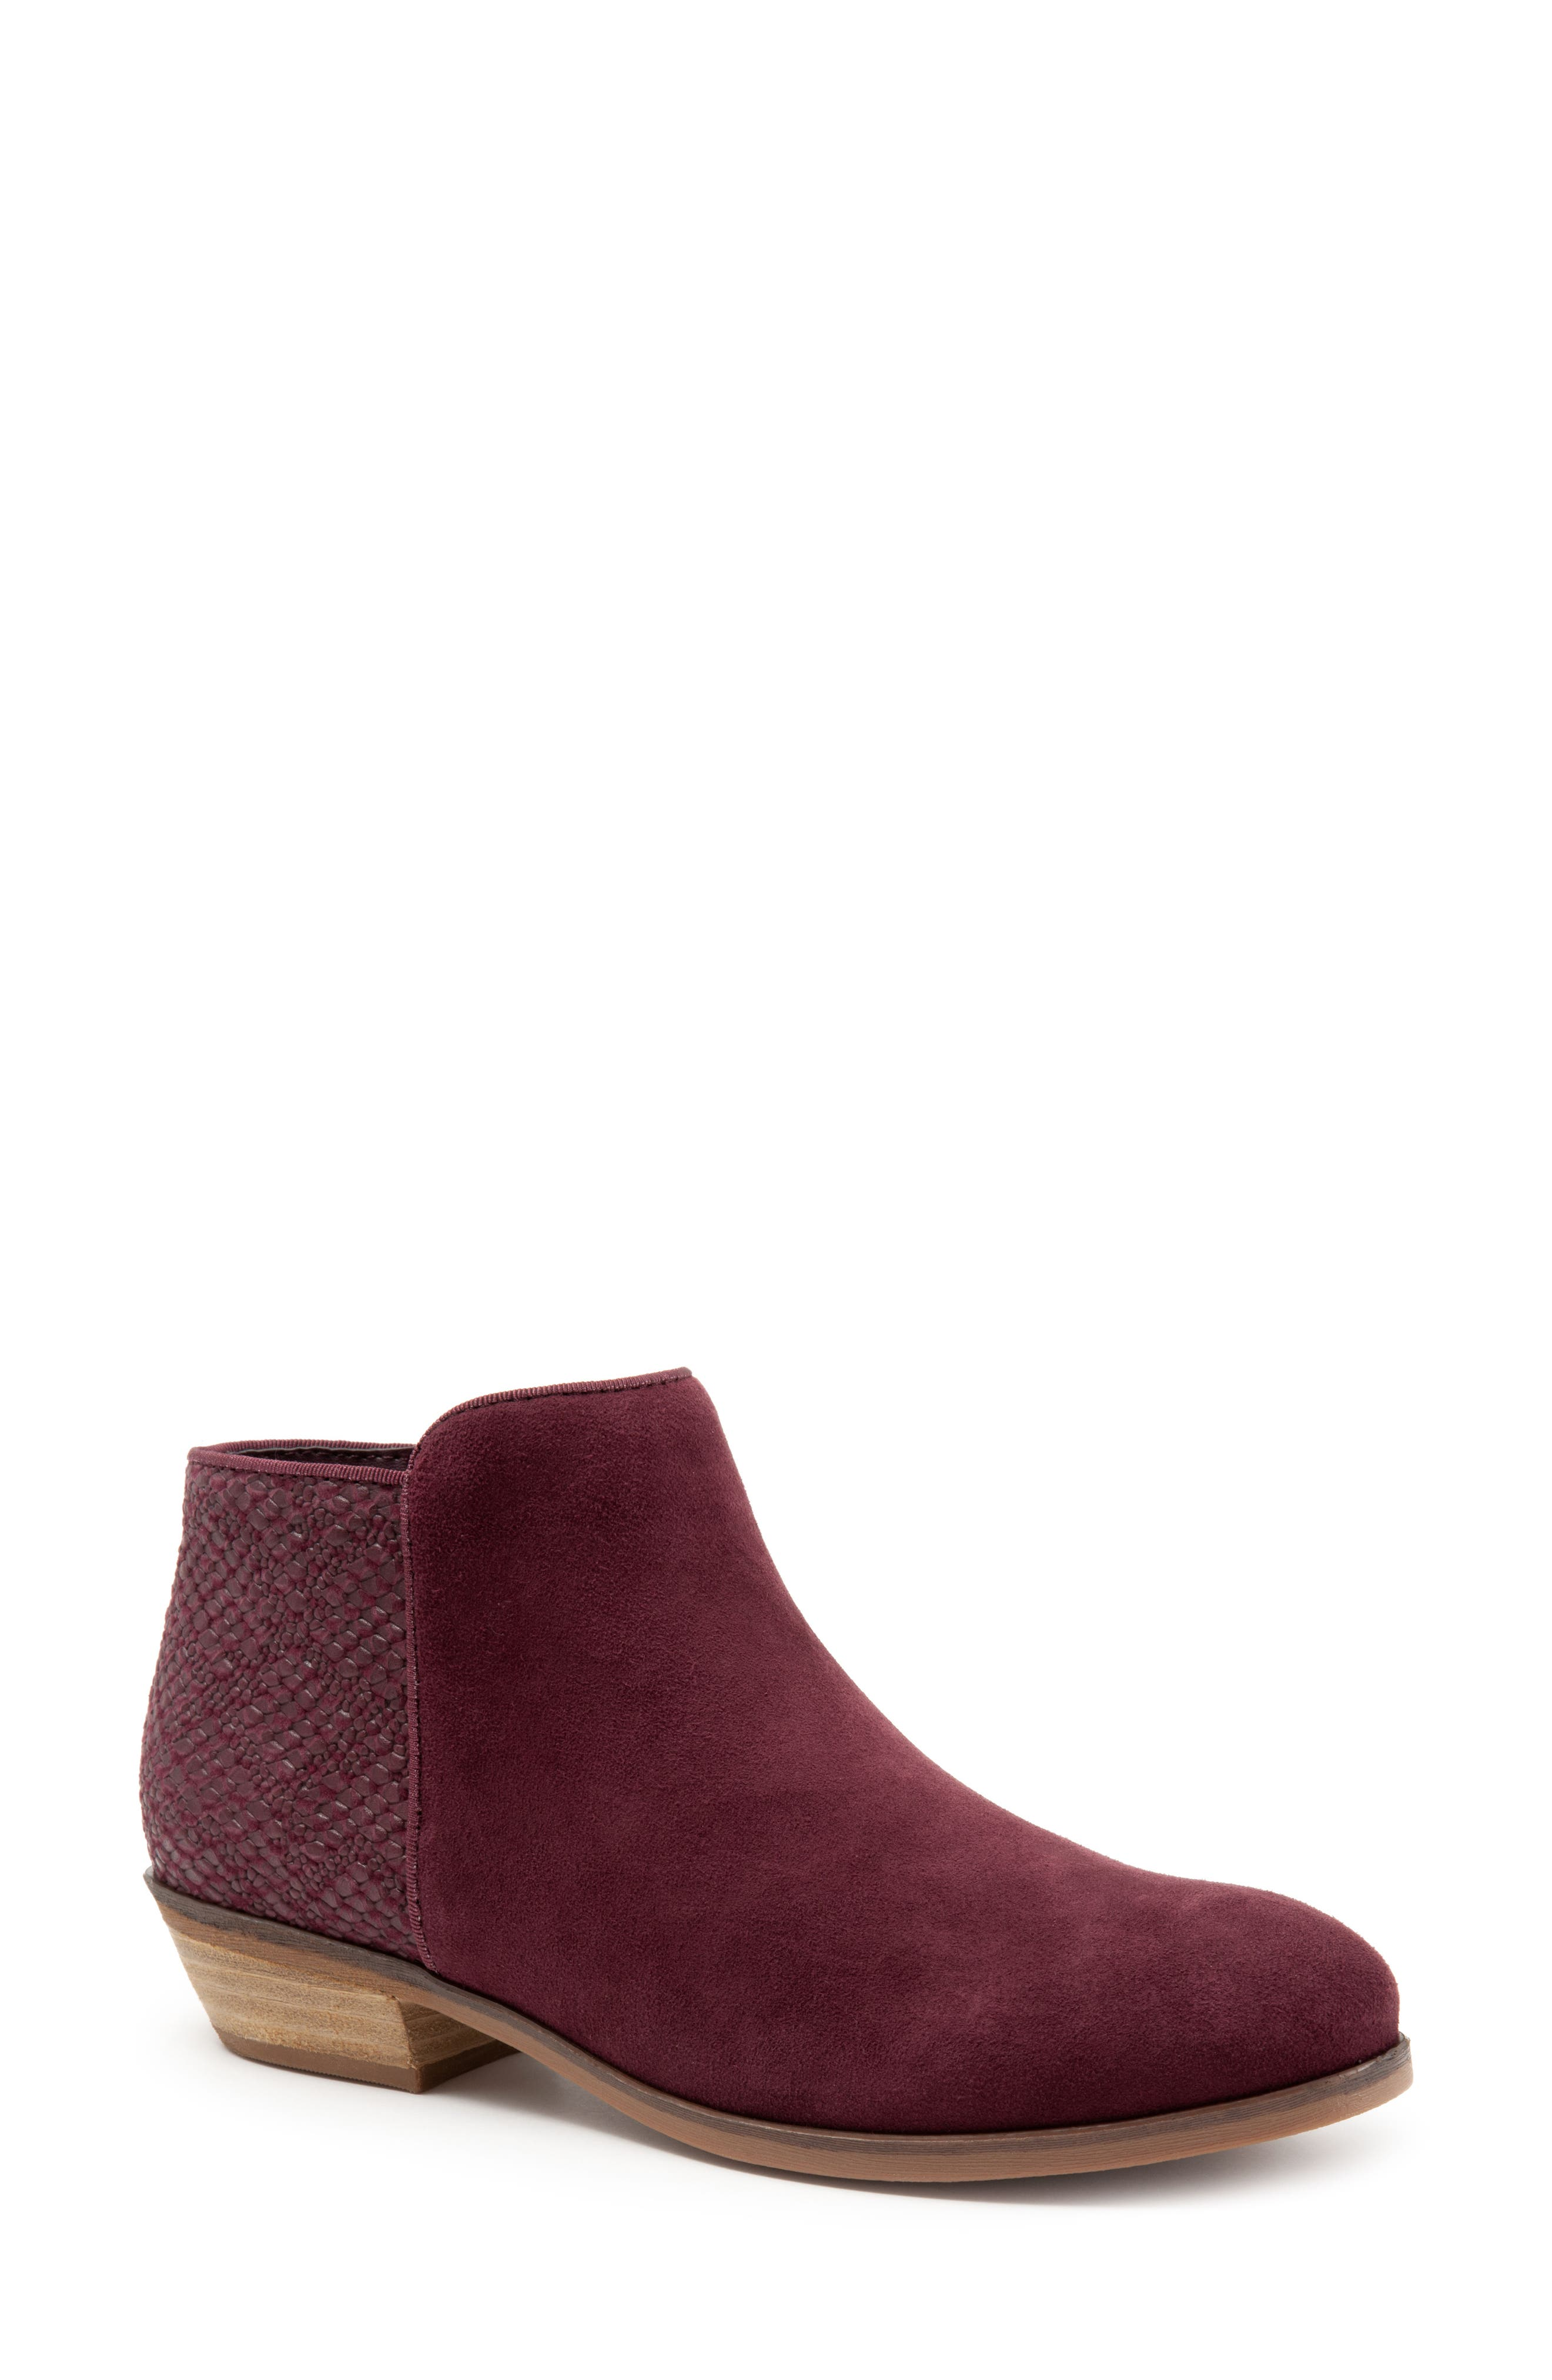 'Rocklin' Bootie,                             Alternate thumbnail 7, color,                             BURGUNDY LEATHER